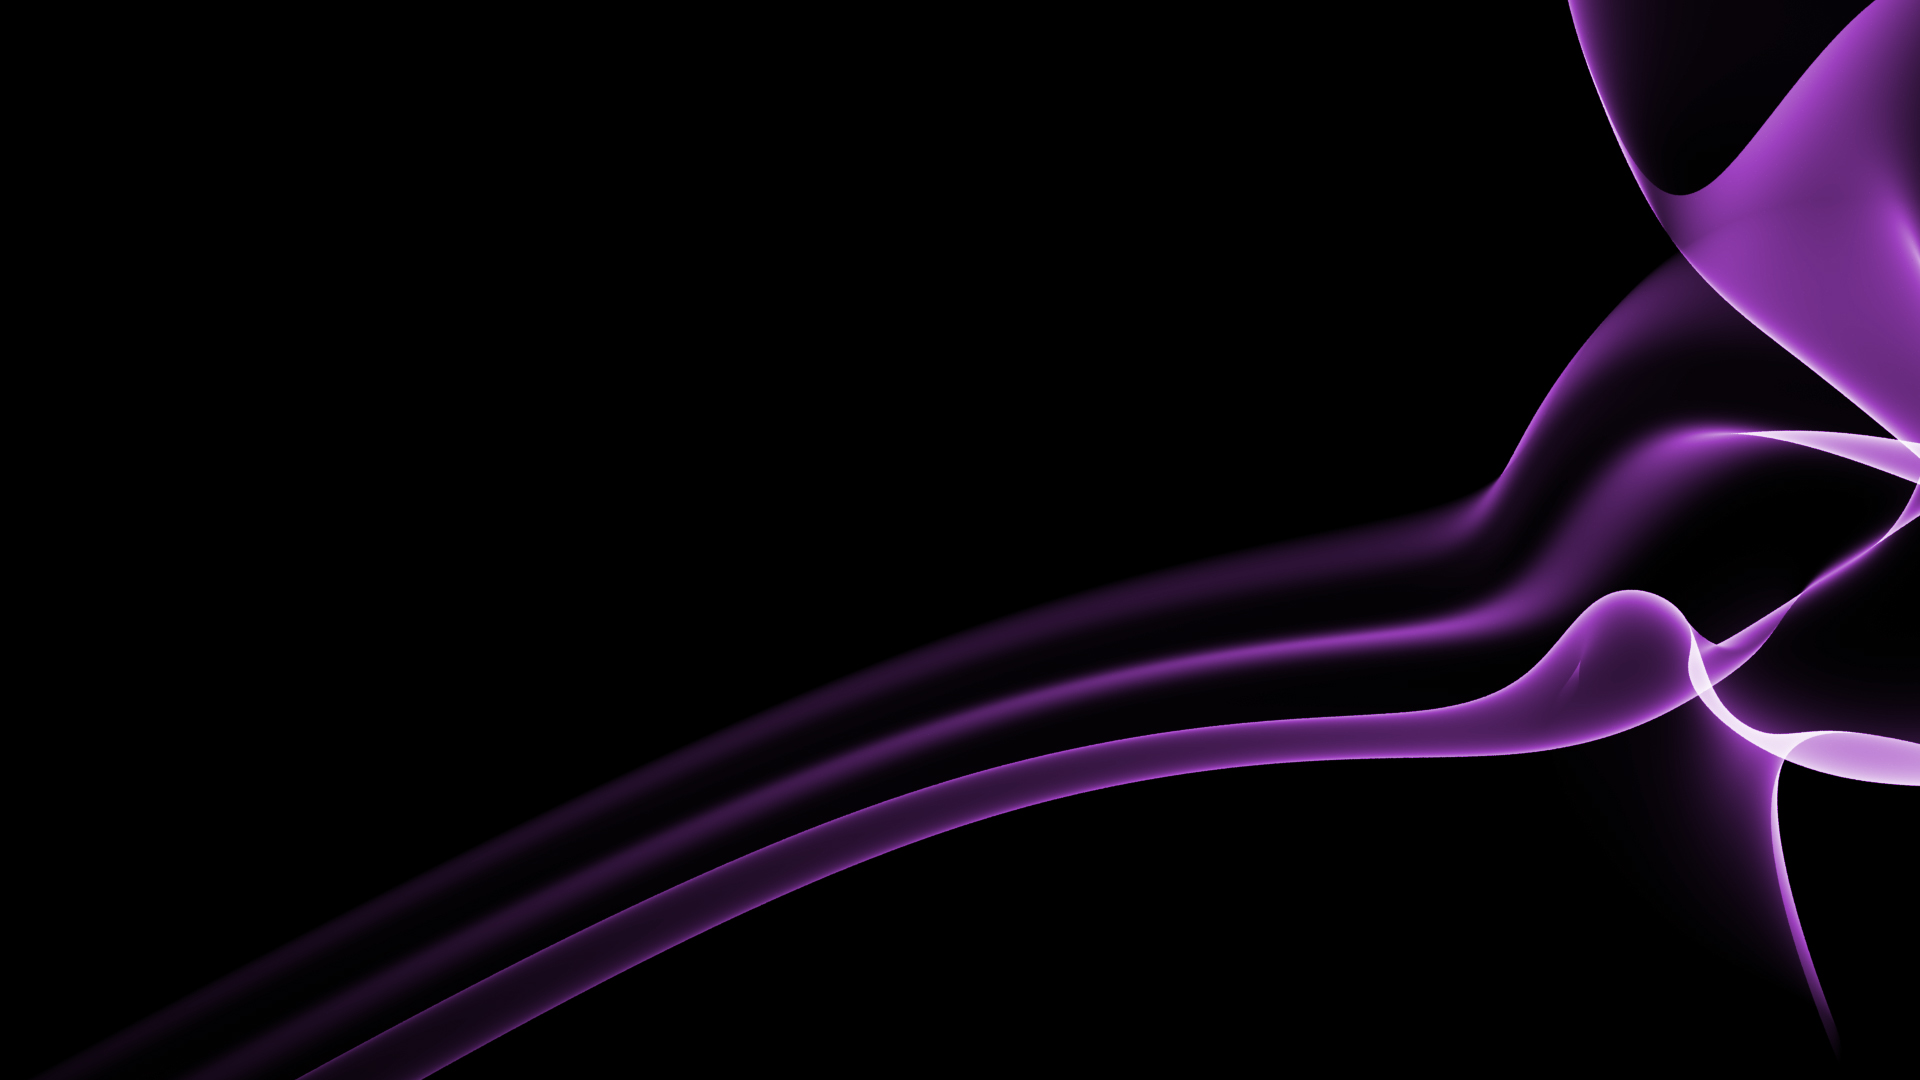 Purple Effect On Black Wallpaper